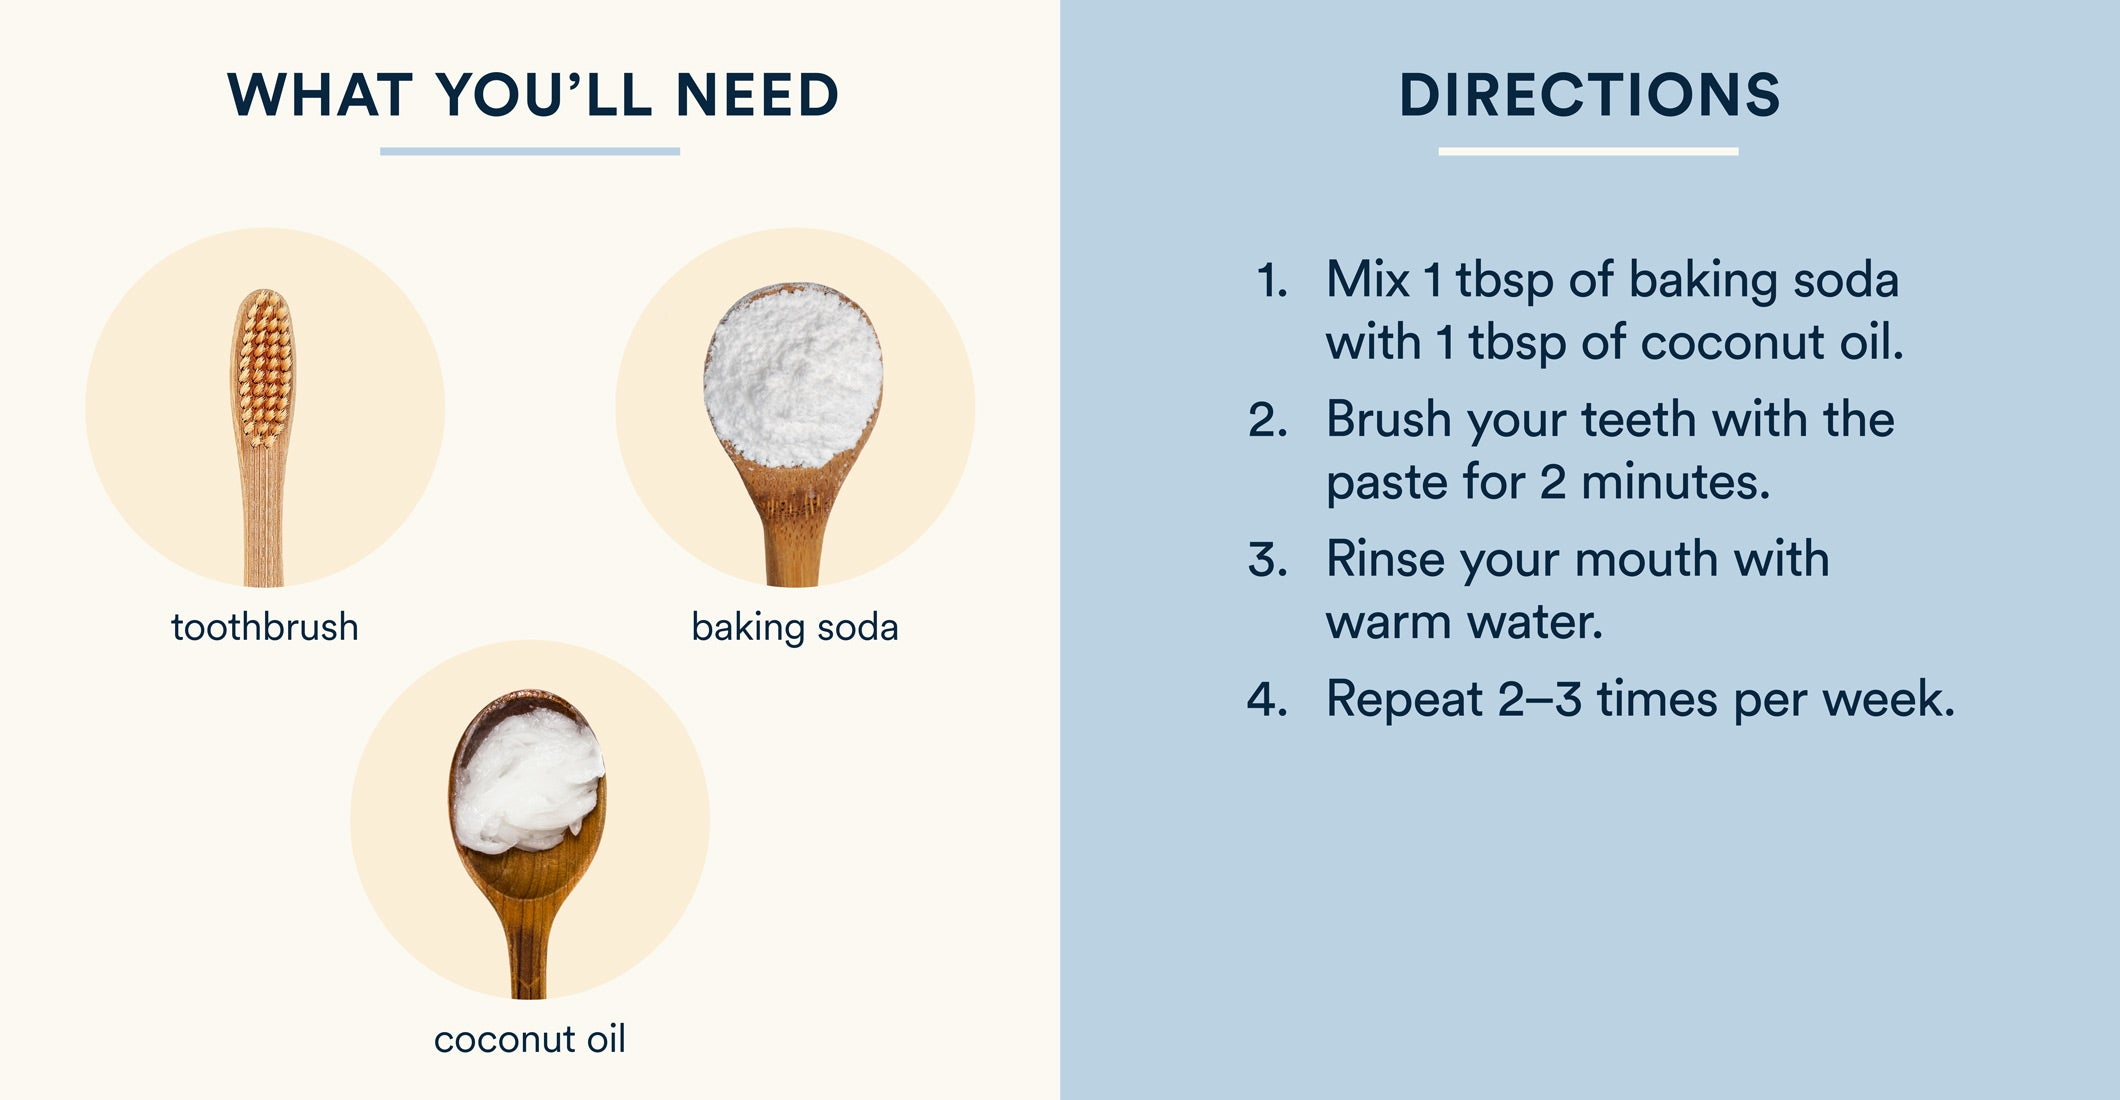 coconut oil and baking soda teeth whitening instructions